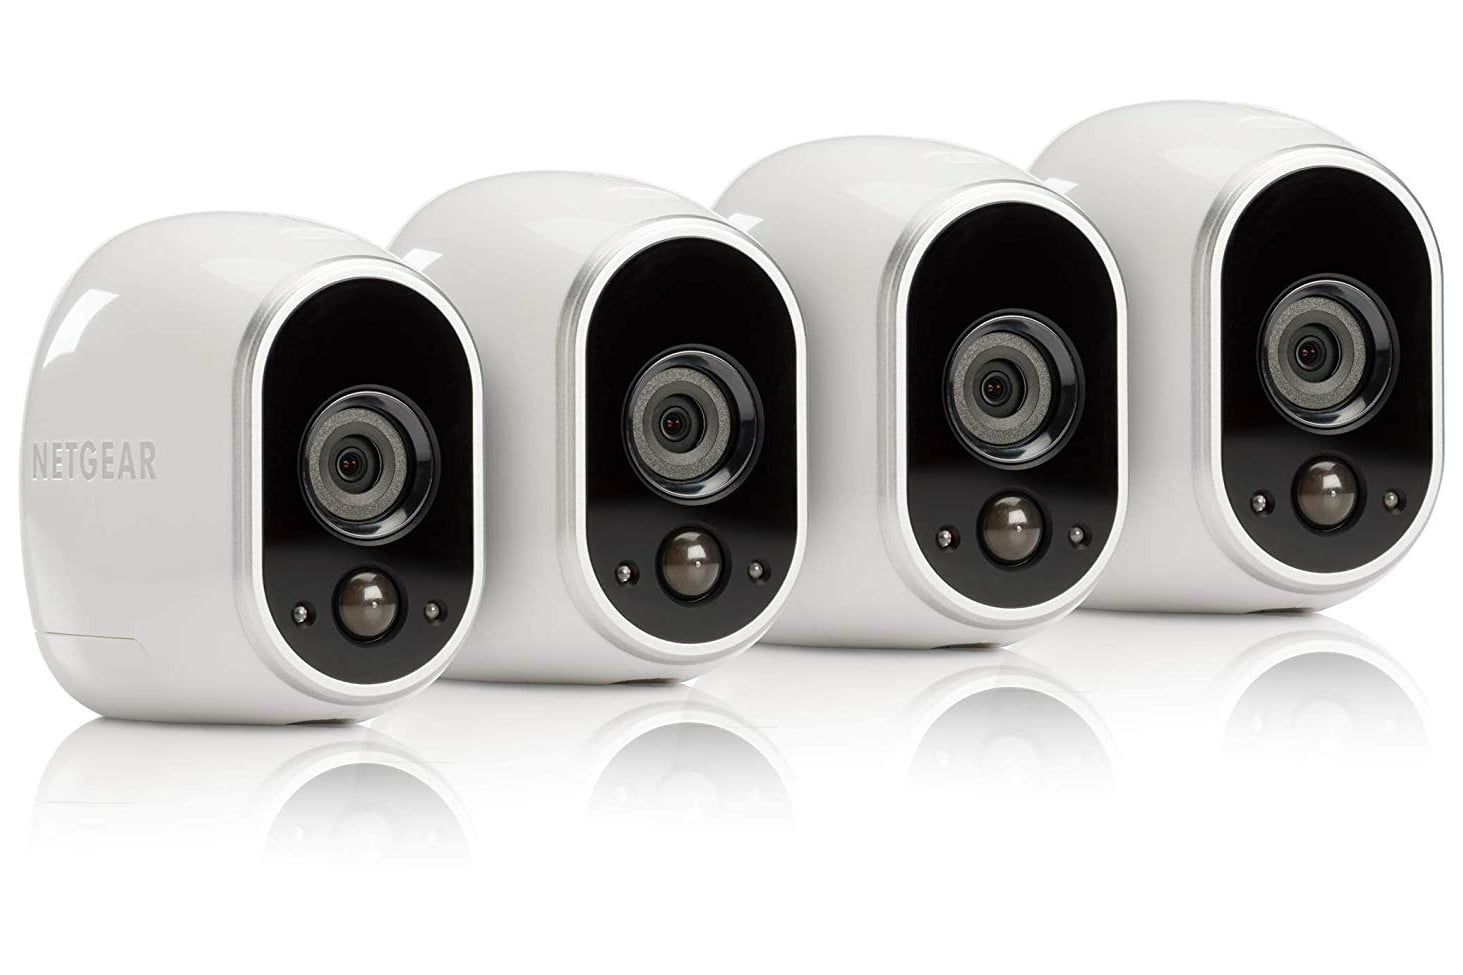 Arlo 4-Camera Wireless Home Security System gets a hefty price cut on Amazon